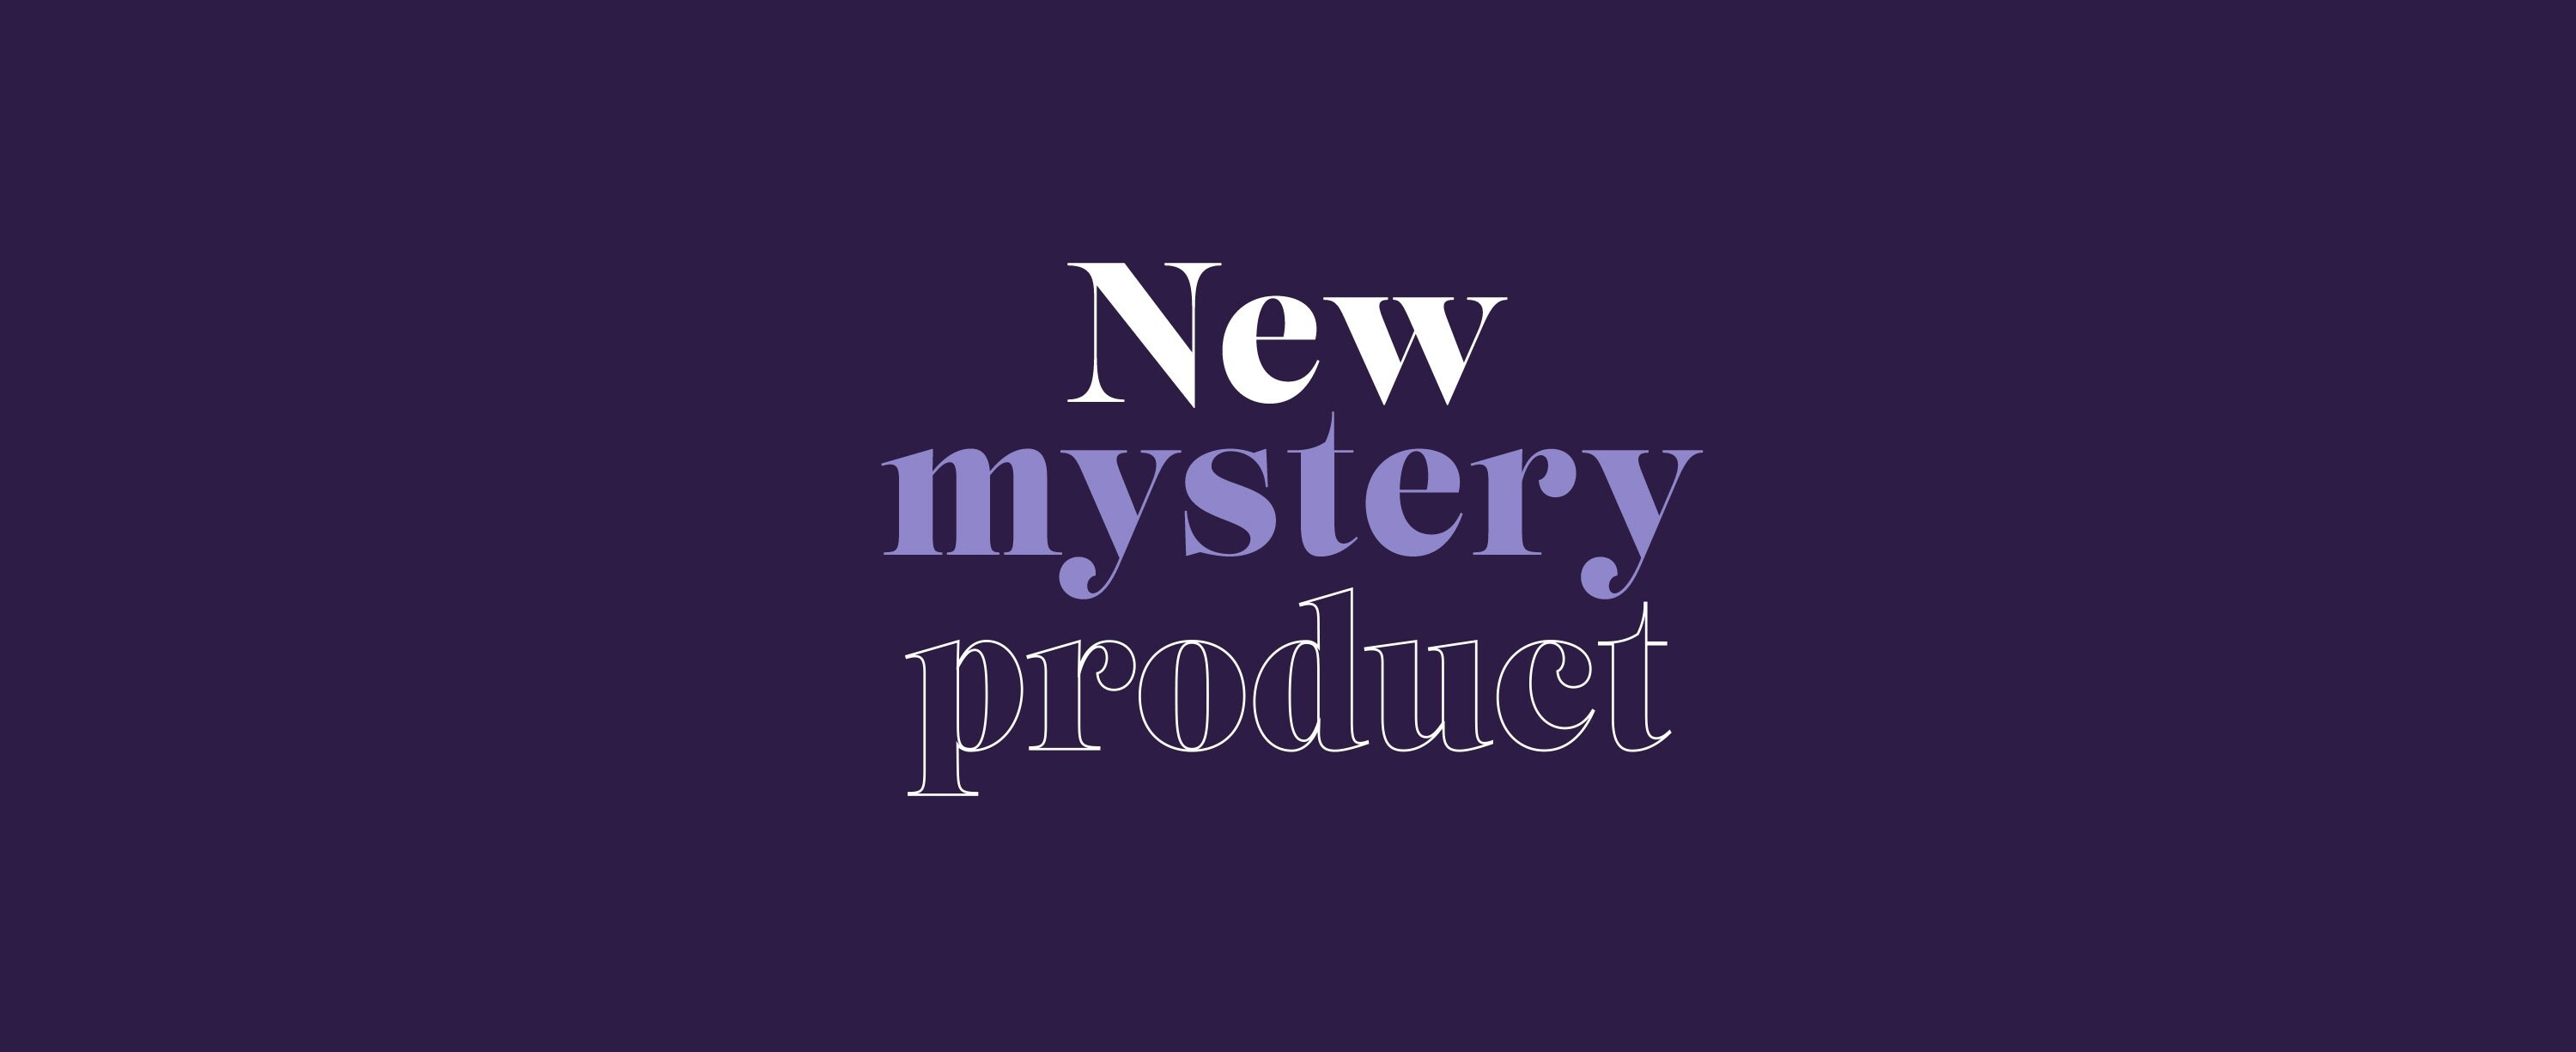 New Mystery Product